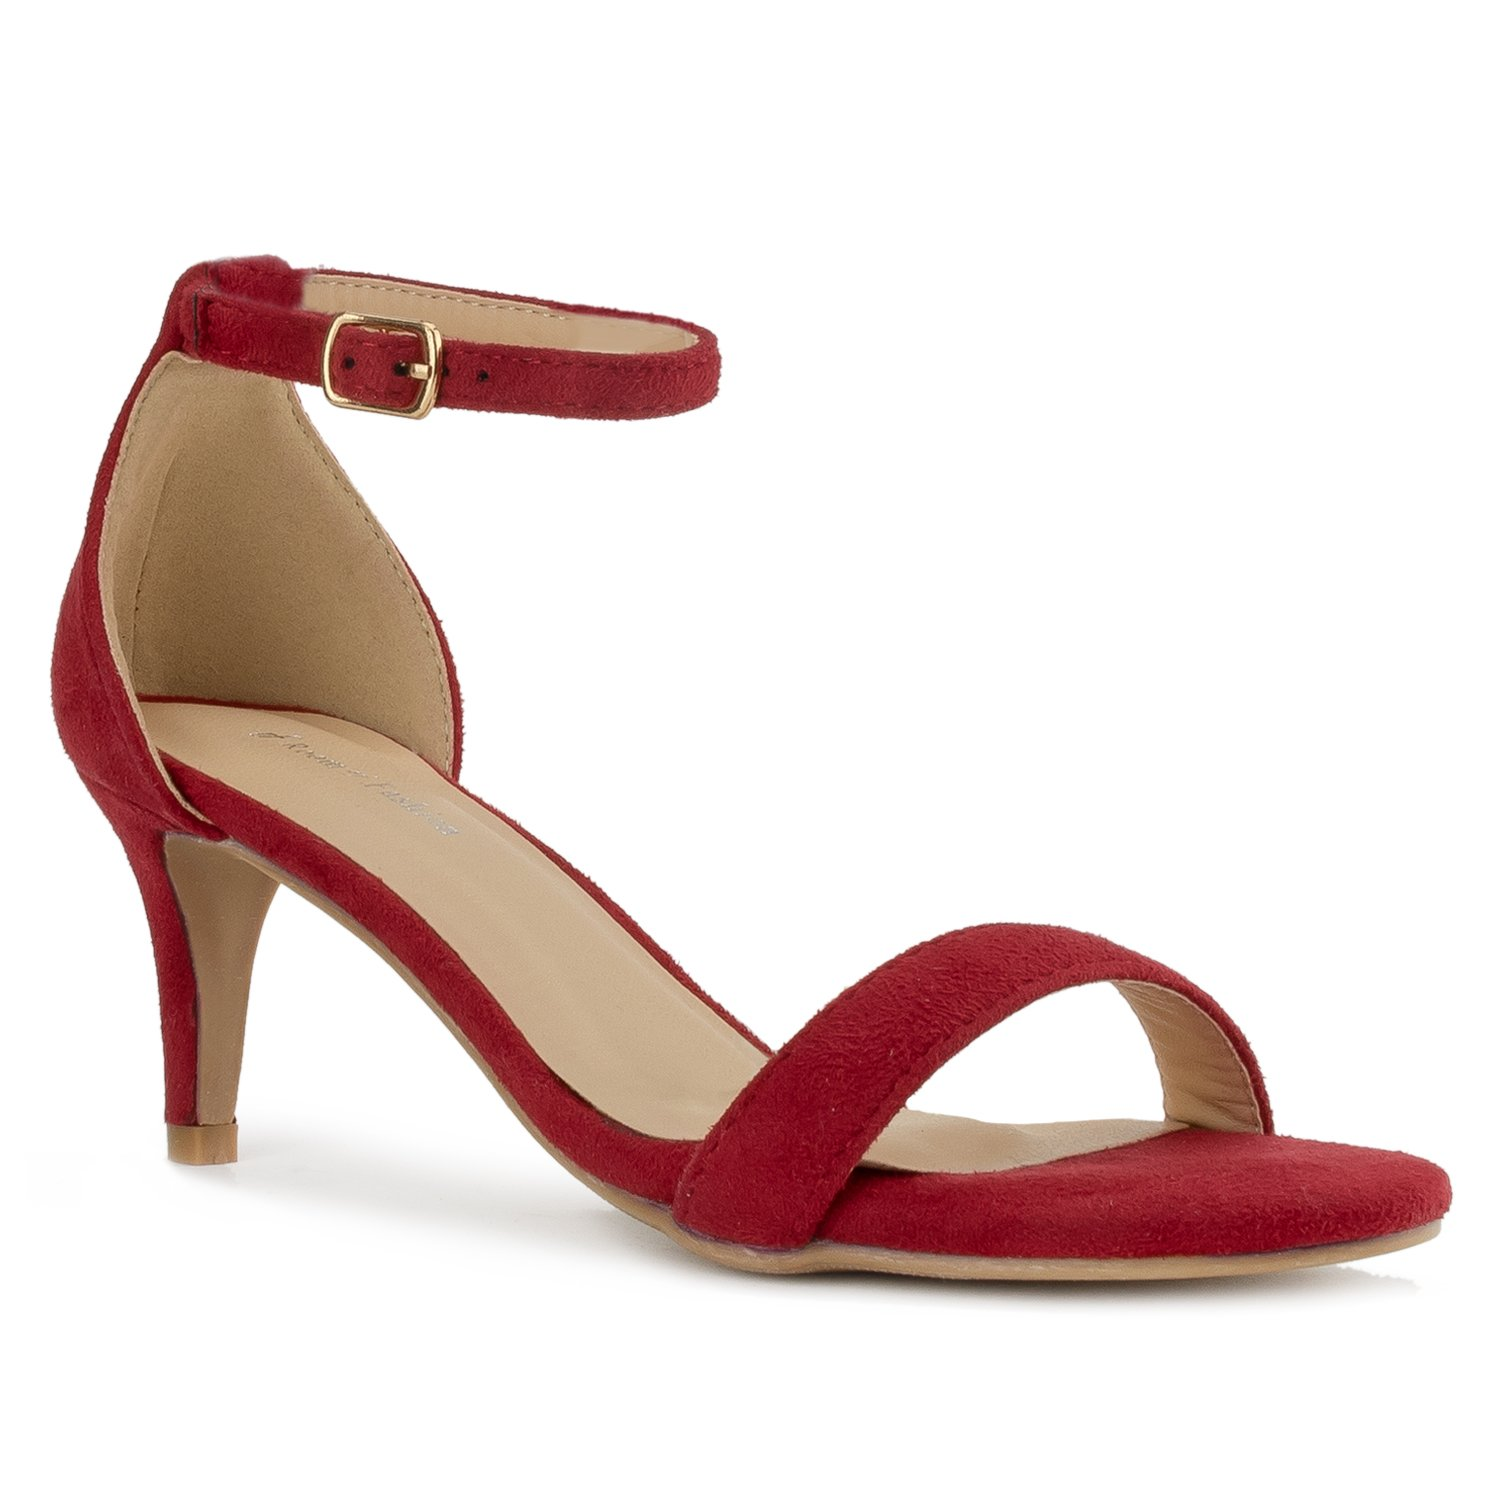 RF ROOM OF FASHION Fashion D'Orsay Ankle Strap Kitten Heel Dress Sandal - Essential Mid Heel Open Toe Vegan Pumps - RED SU (7)